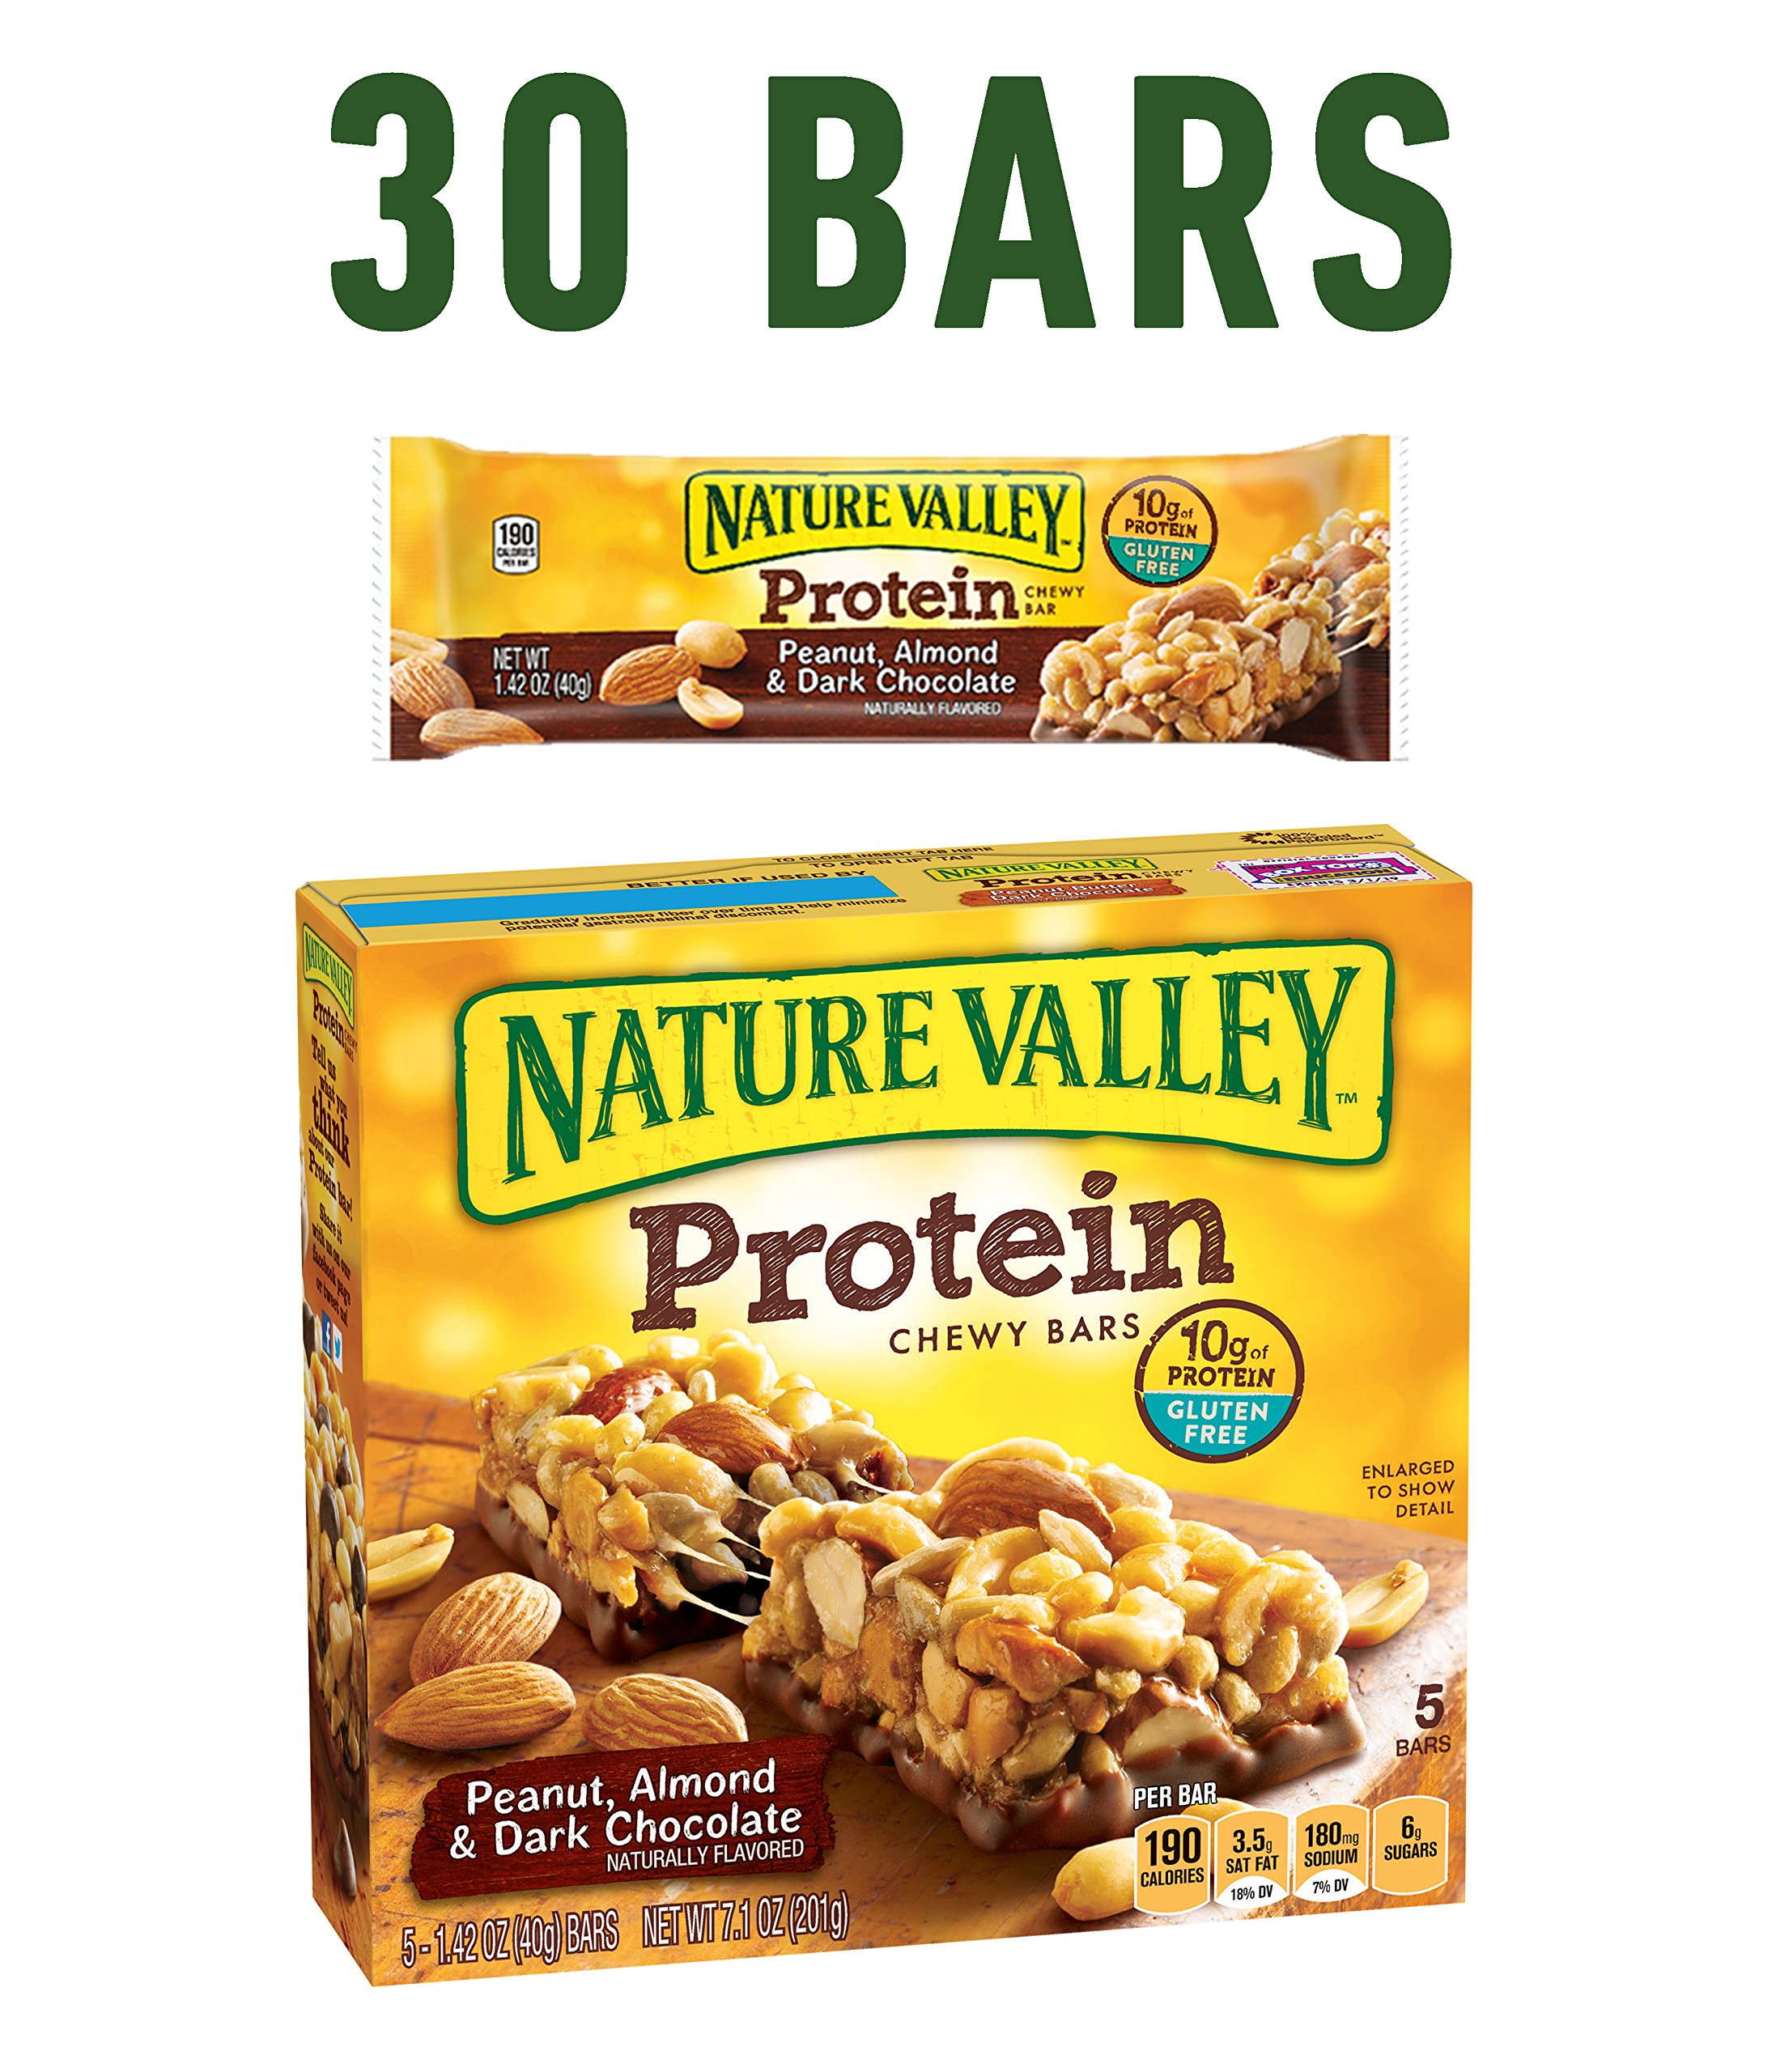 Nature Valley Chewy Granola Bar, Protein, Peanut, Almond and Dark Chocolate, Gluten Free,  1.4 Oz, 5 Count (Pack of 6)